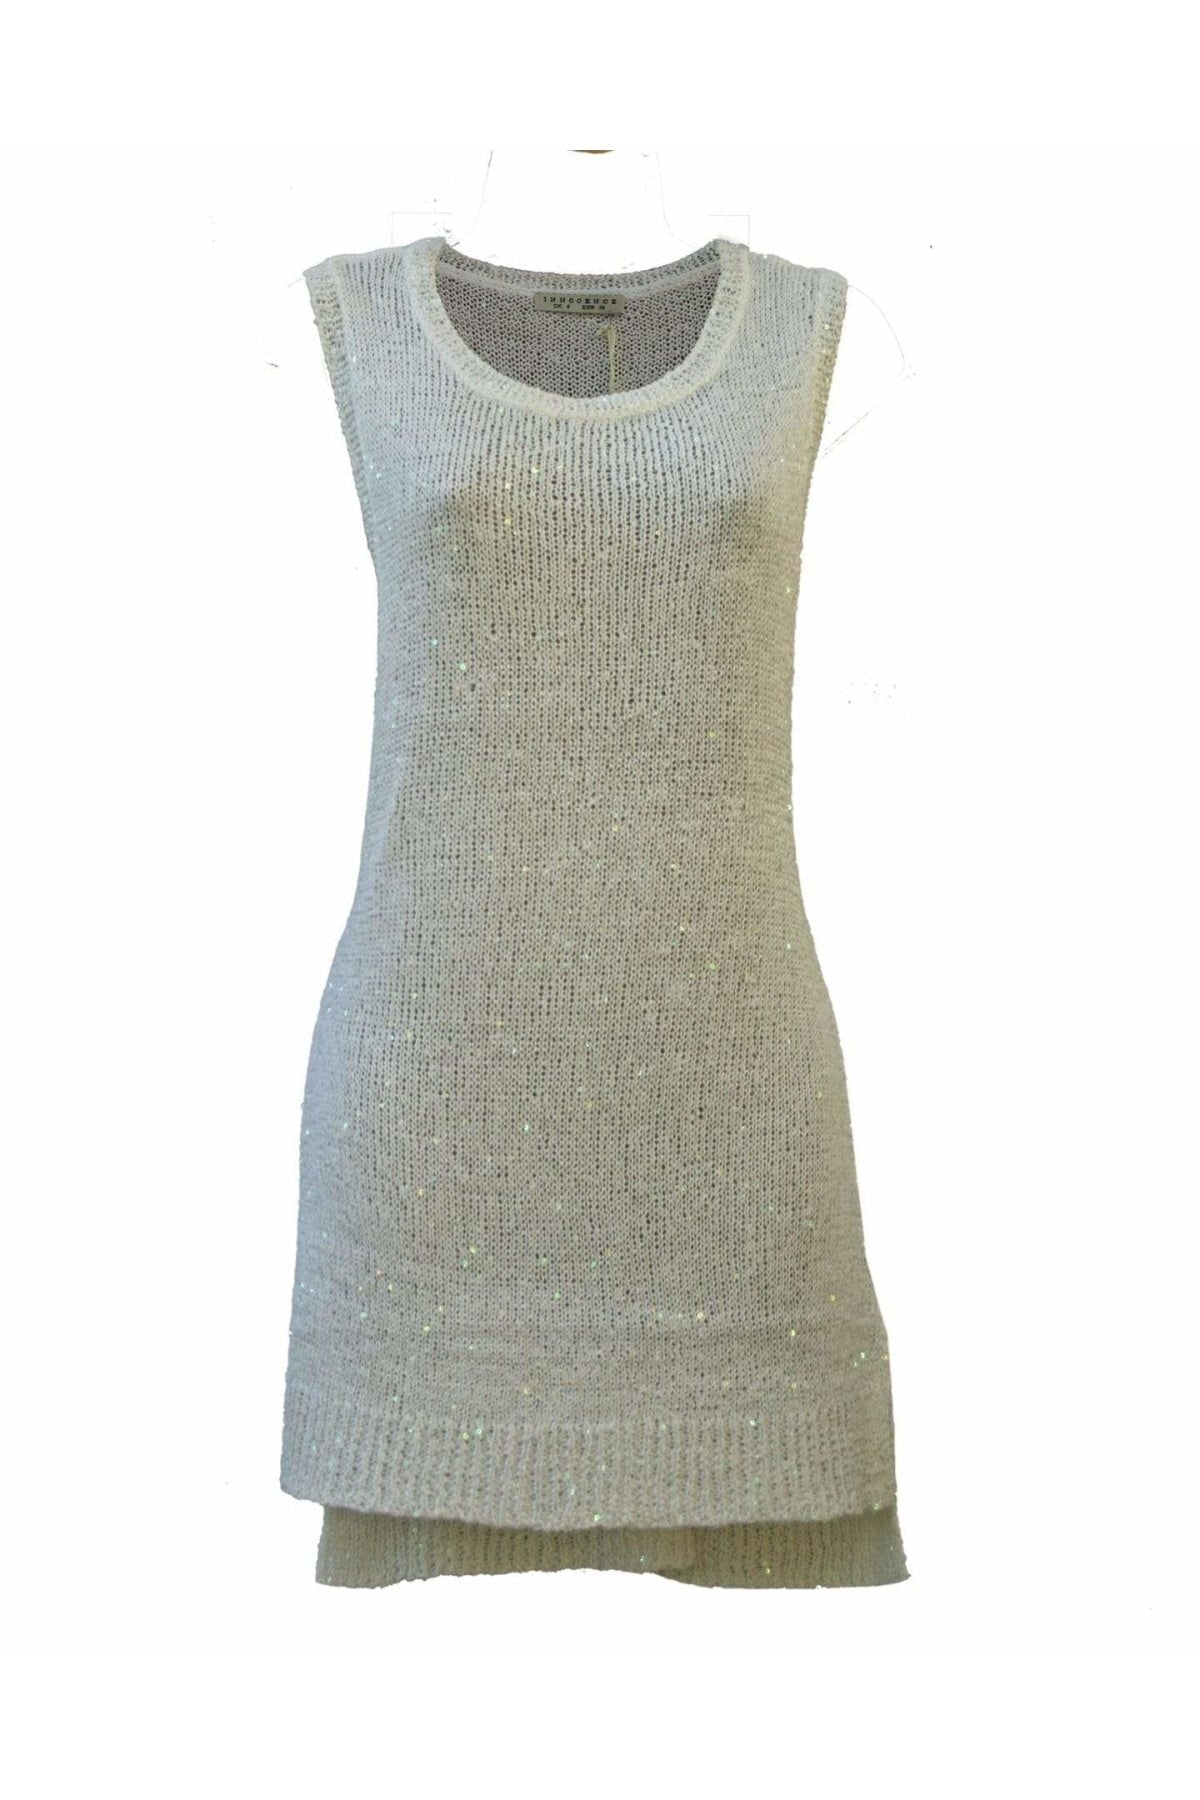 Innocence Innocence Sparkle Sequin Knit Sleeveless Long Top | 12 / White Secret Label